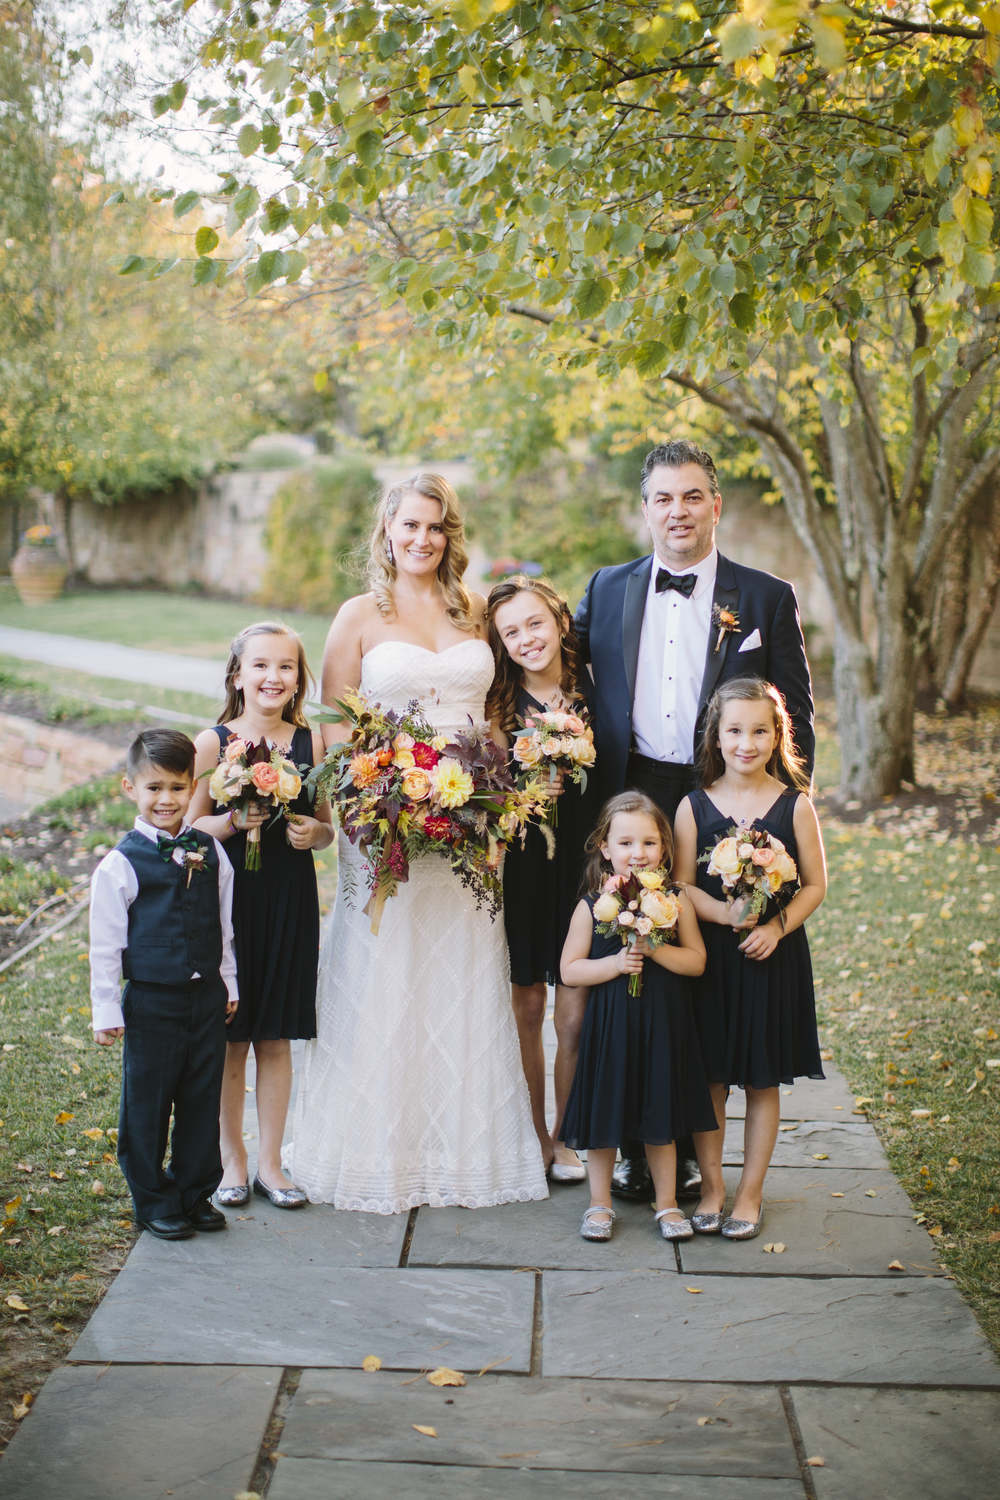 "Todd's children made up the bridal party for the couple's wedding. The girls carried small bouquets of roses, spray roses, seeded eucalyptus and """".   All bridal parties have sentimental value, but this gesture seemed particularly sweet, and we are so happy for this family!"